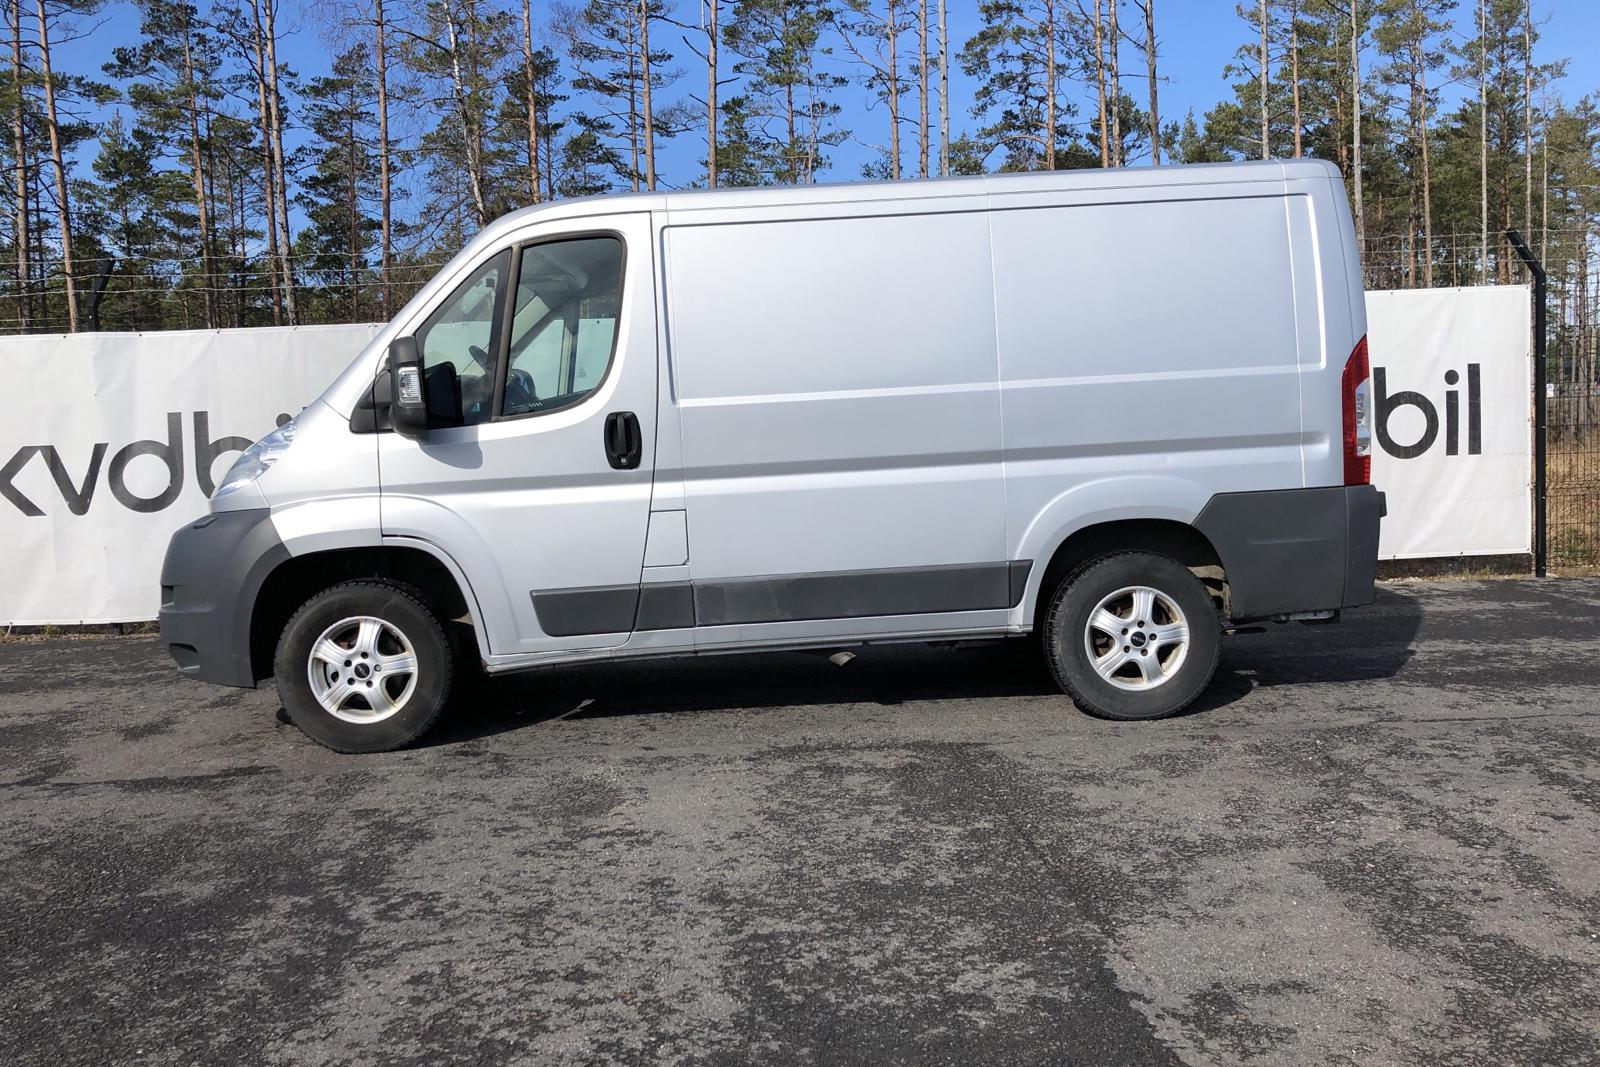 Peugeot Boxer 2.2 HDI Skåp (130hk) - 179 380 km - Manual - Light Grey - 2014